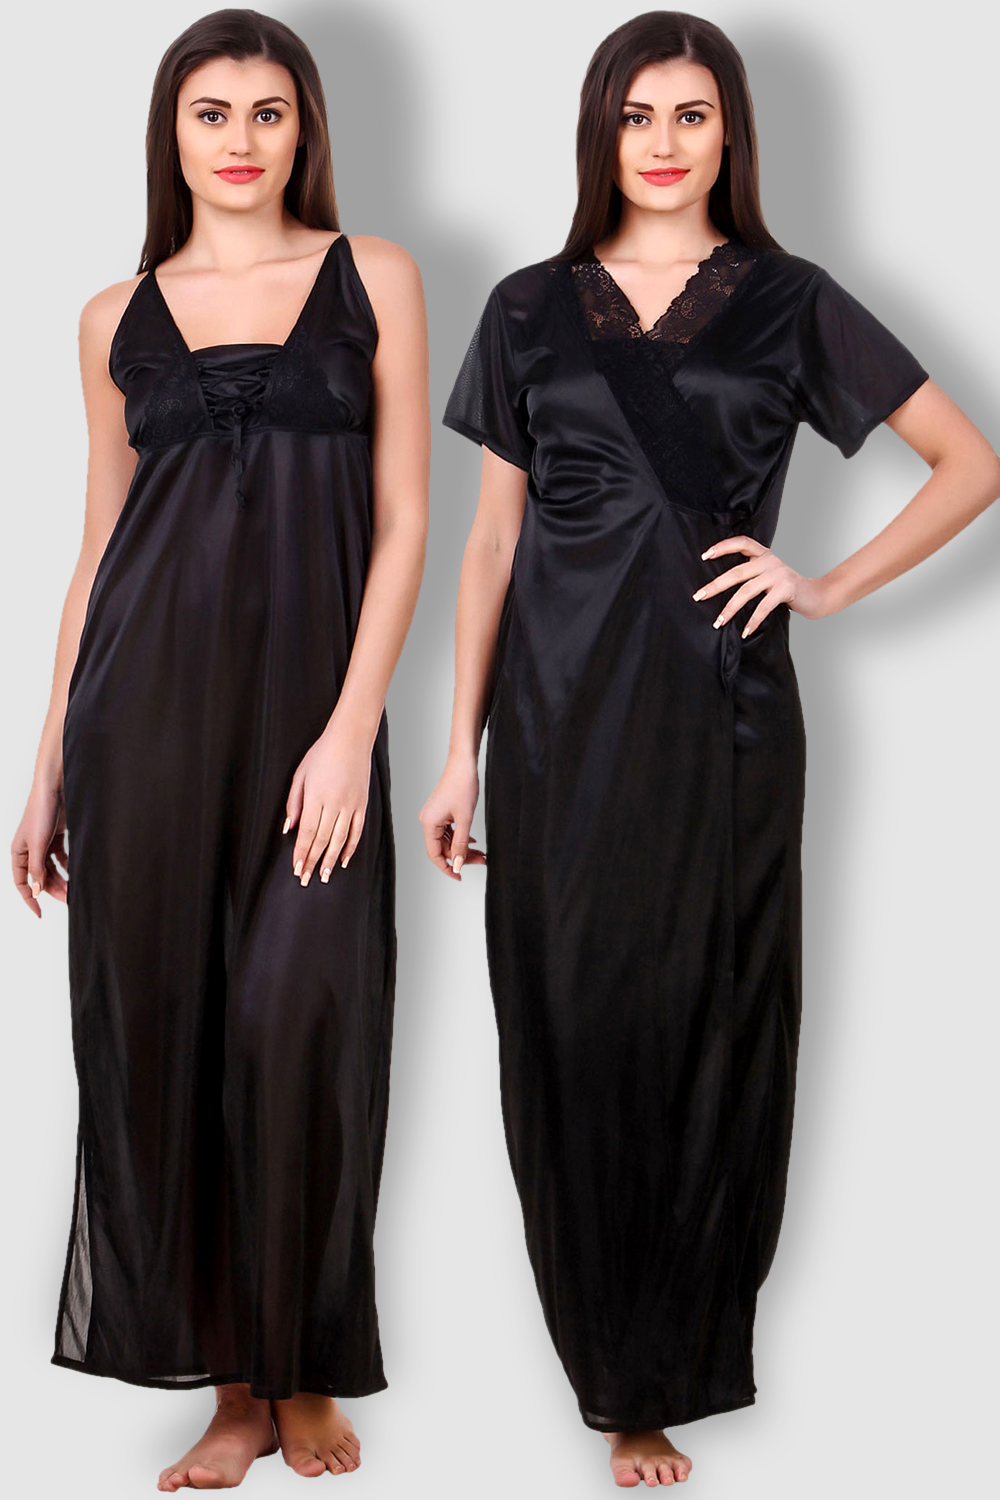 Fasense Satin Black Nightwear 2 Pc Set of Nighty and Wrap Gown - Buy ... 54982e4a1